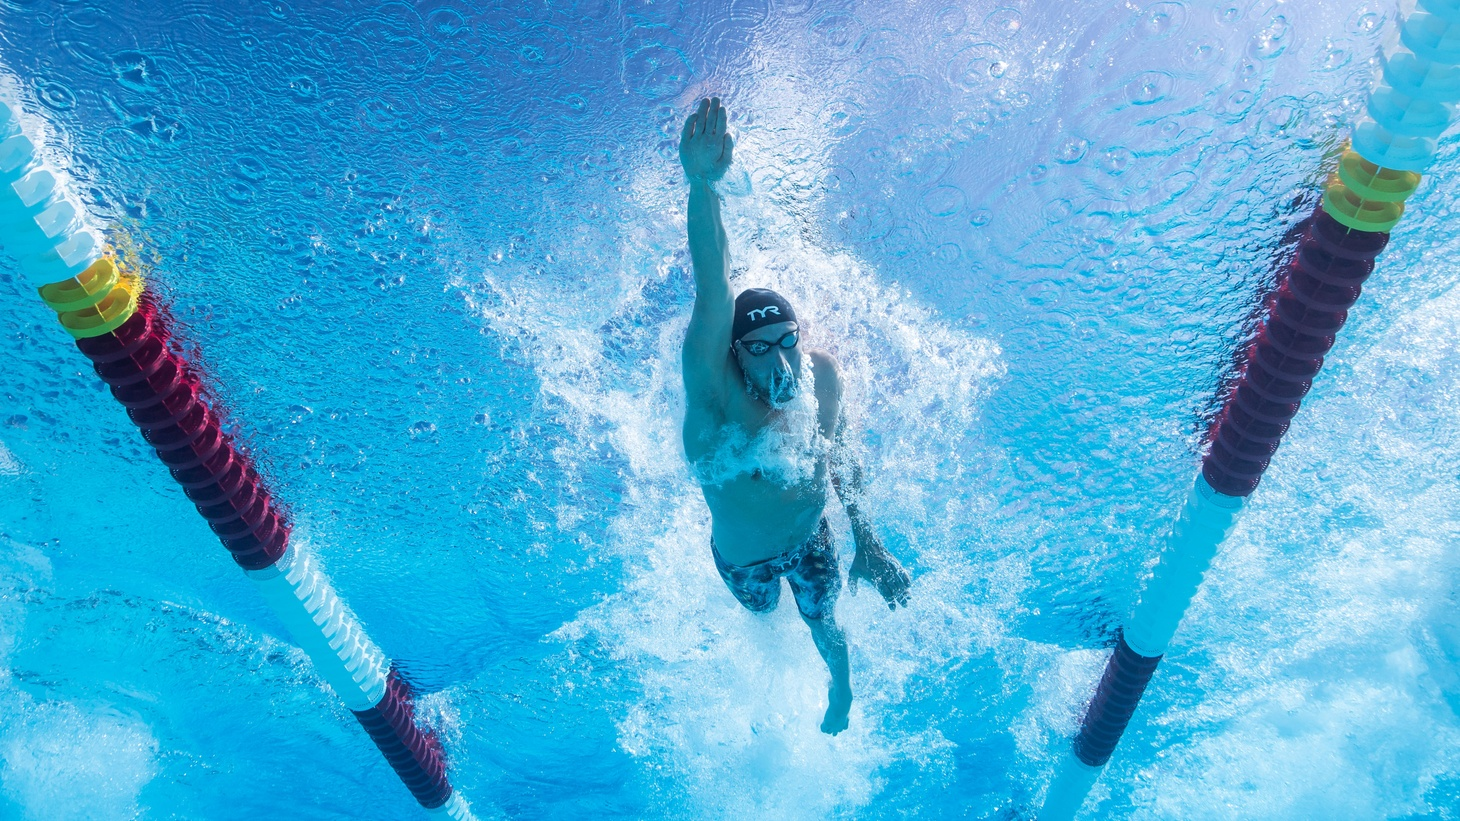 """Jordan Wilimovsky is competing in the 10,000 meter open water race in the Summer Olympics. He's been training in a pool, and navigating pandemic-forced pool closures have been tough. """"I've been driving all over the place, going out to Burbank to train there, or commuting back and forth to Mission Viejo to train. … Just recently I have been able to find consistent training in Los Angeles,"""" he says."""